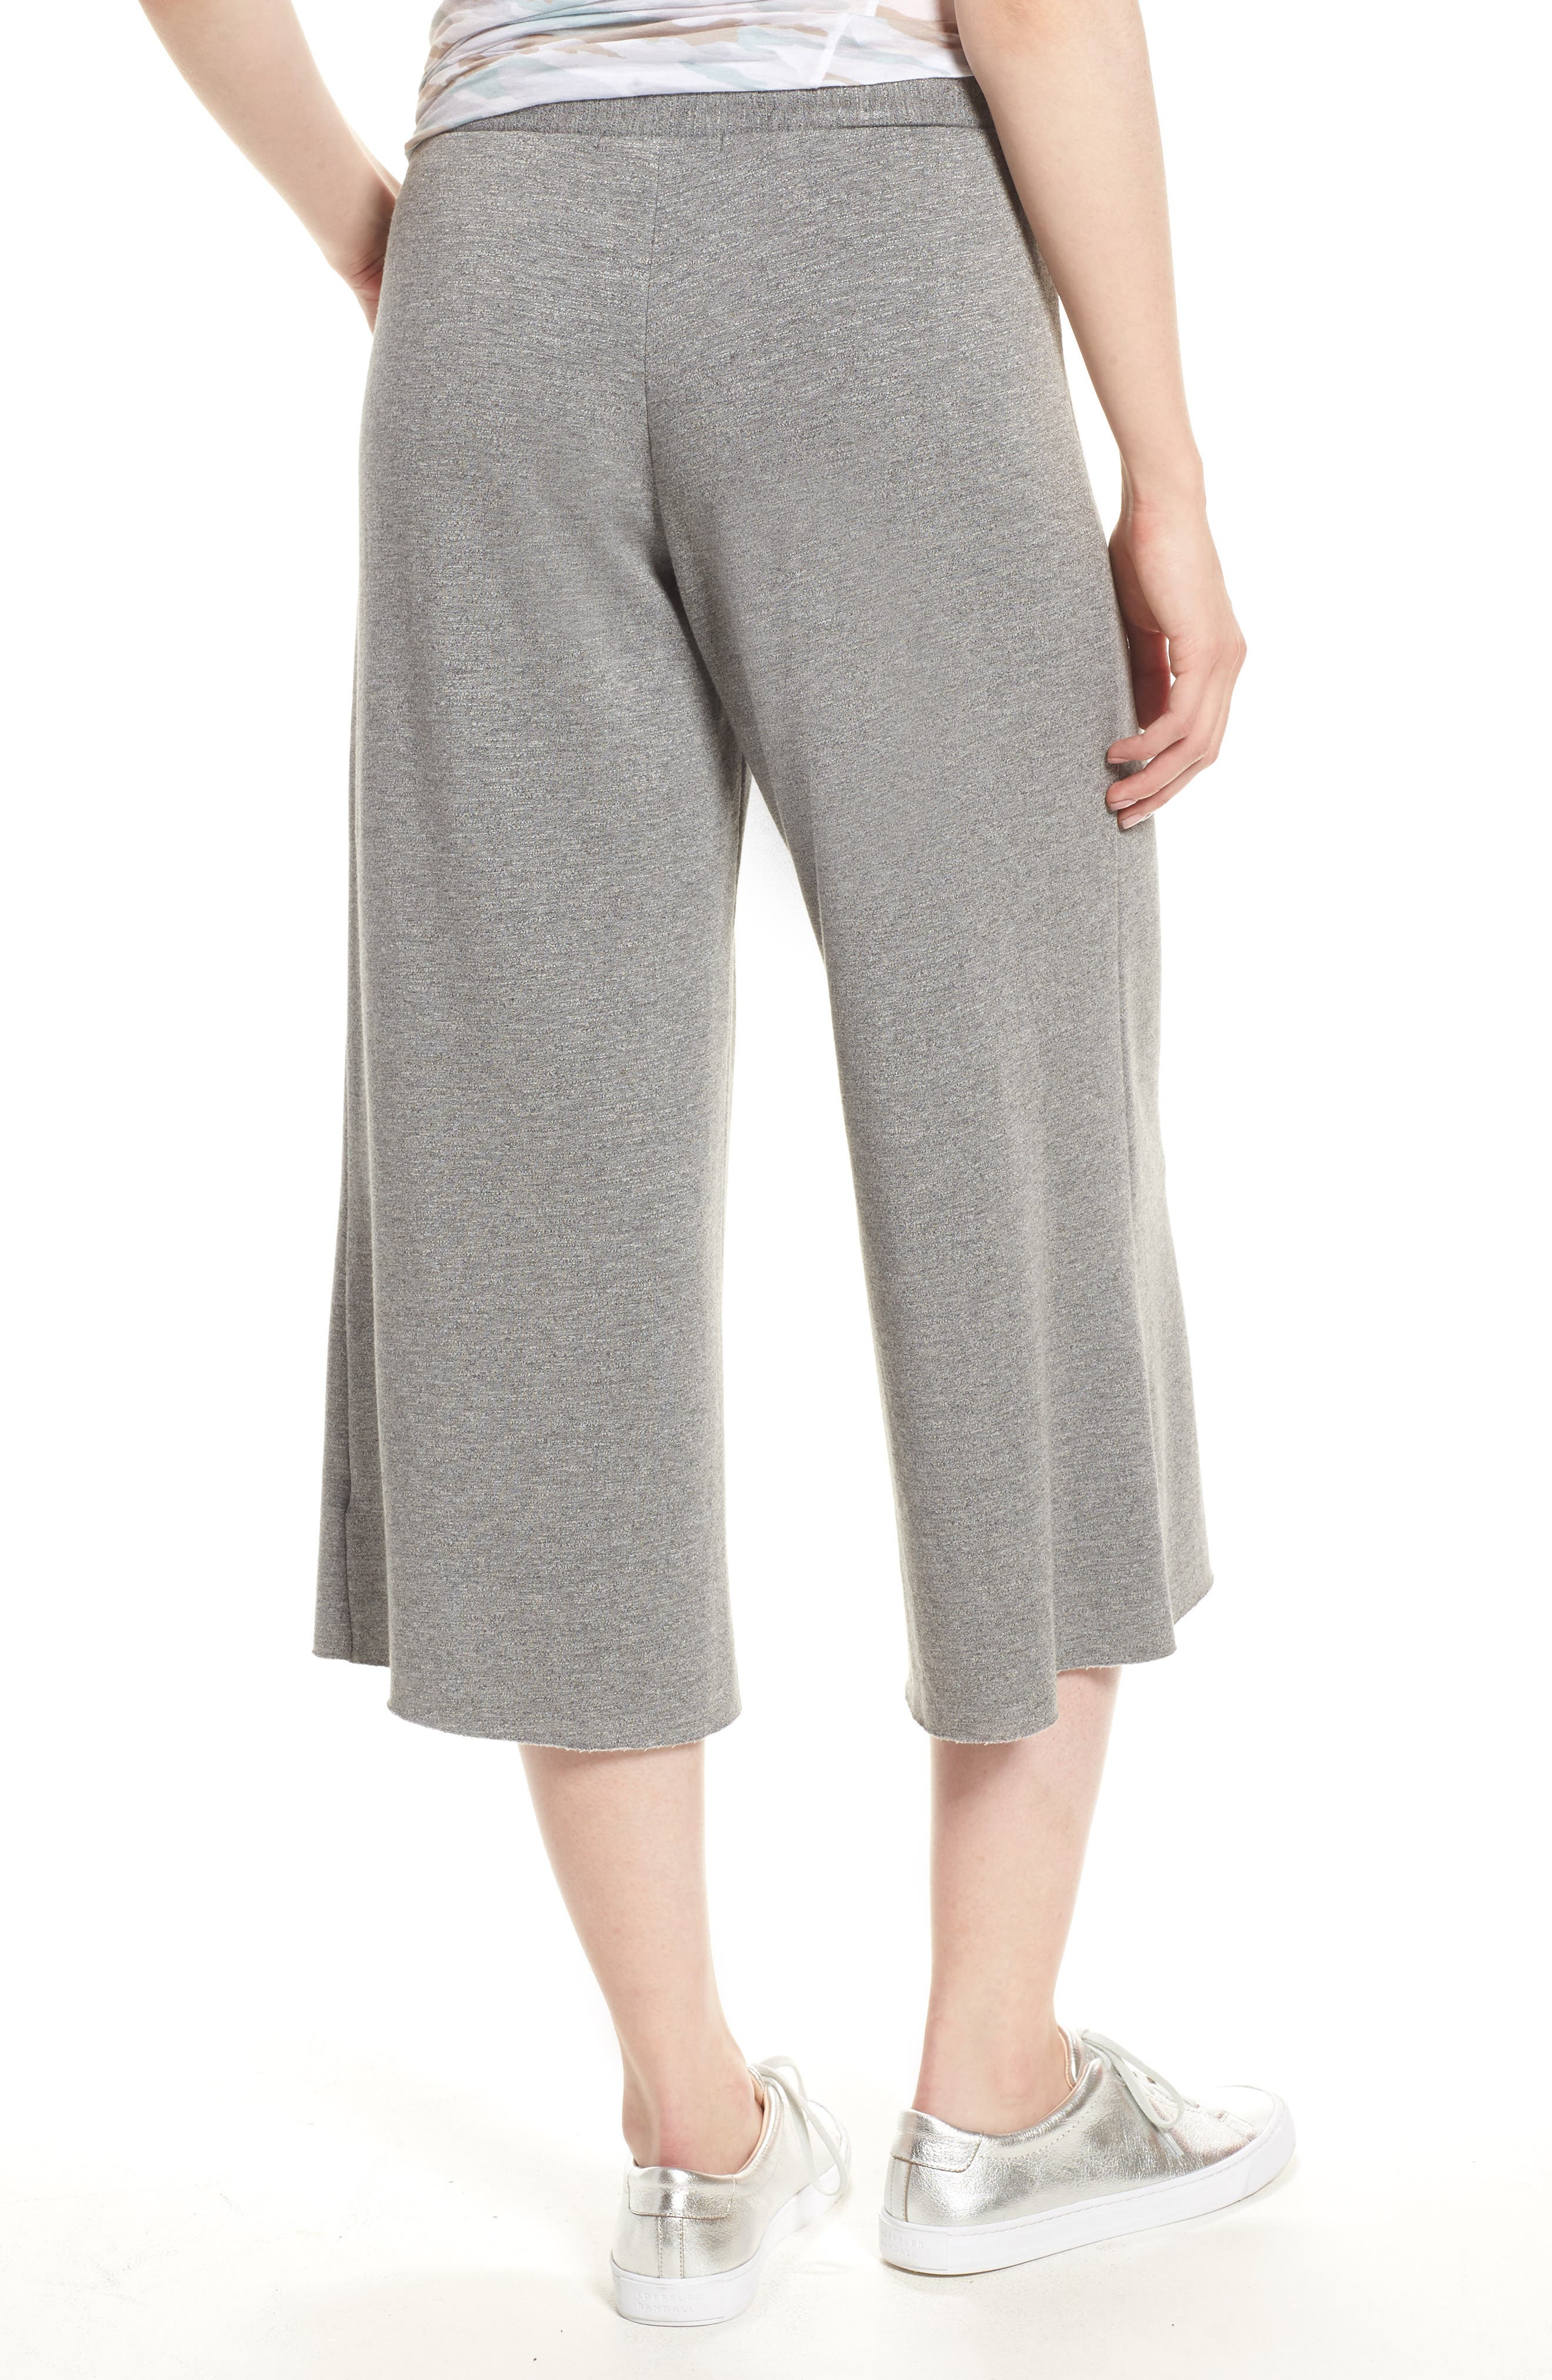 Flare Fleece Pants,                             Alternate thumbnail 2, color,                             Heather Grey